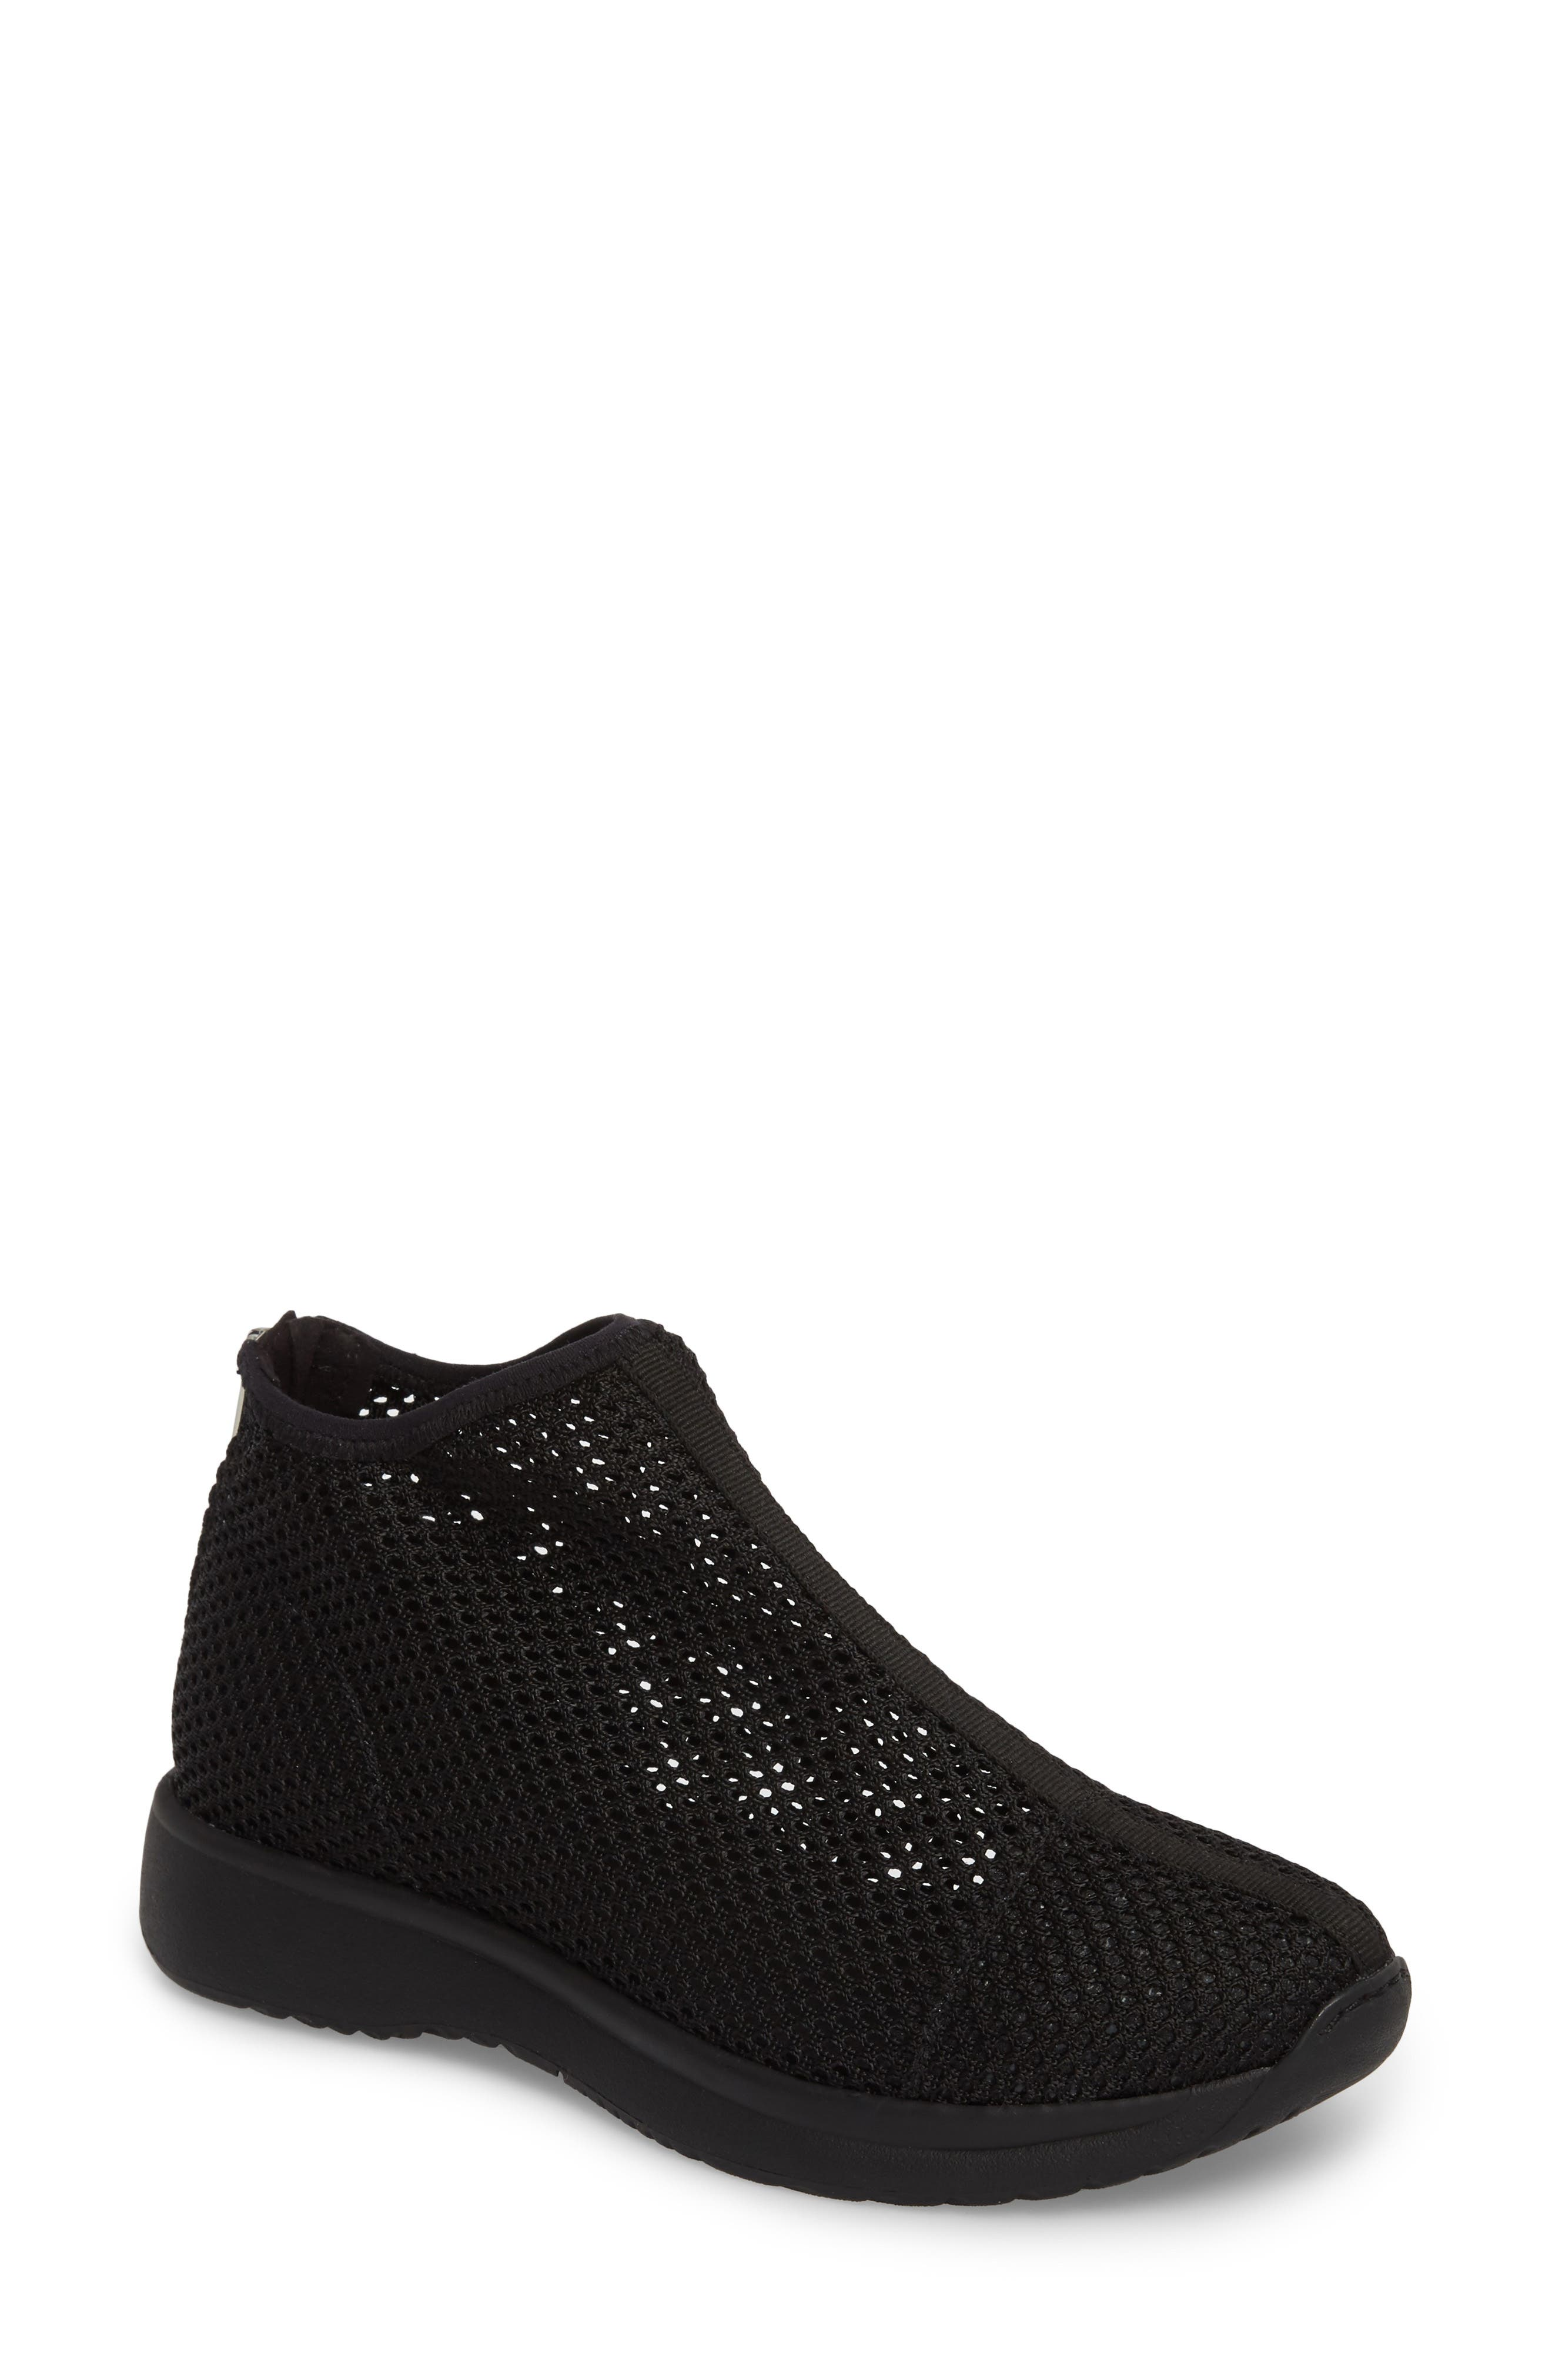 Cintia Sneaker,                         Main,                         color, Black Fabric